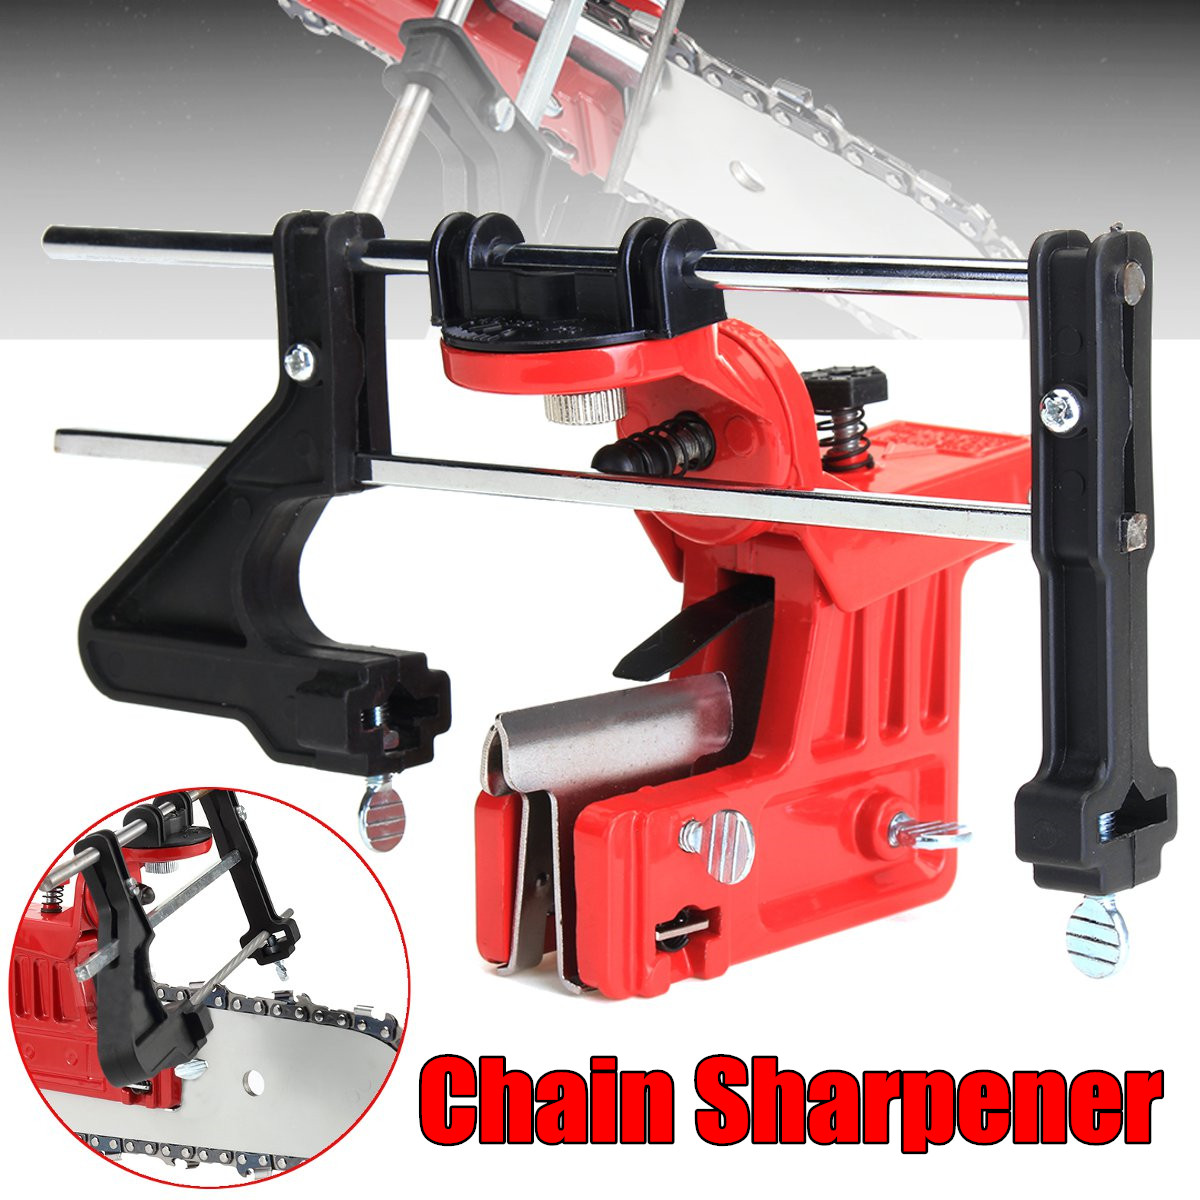 Universal Pro Lawn Mower Chainsaw Chain File & Guide Sharpener Grinding Guide for Garden Chain Saw Sharpener Garden Tools цена